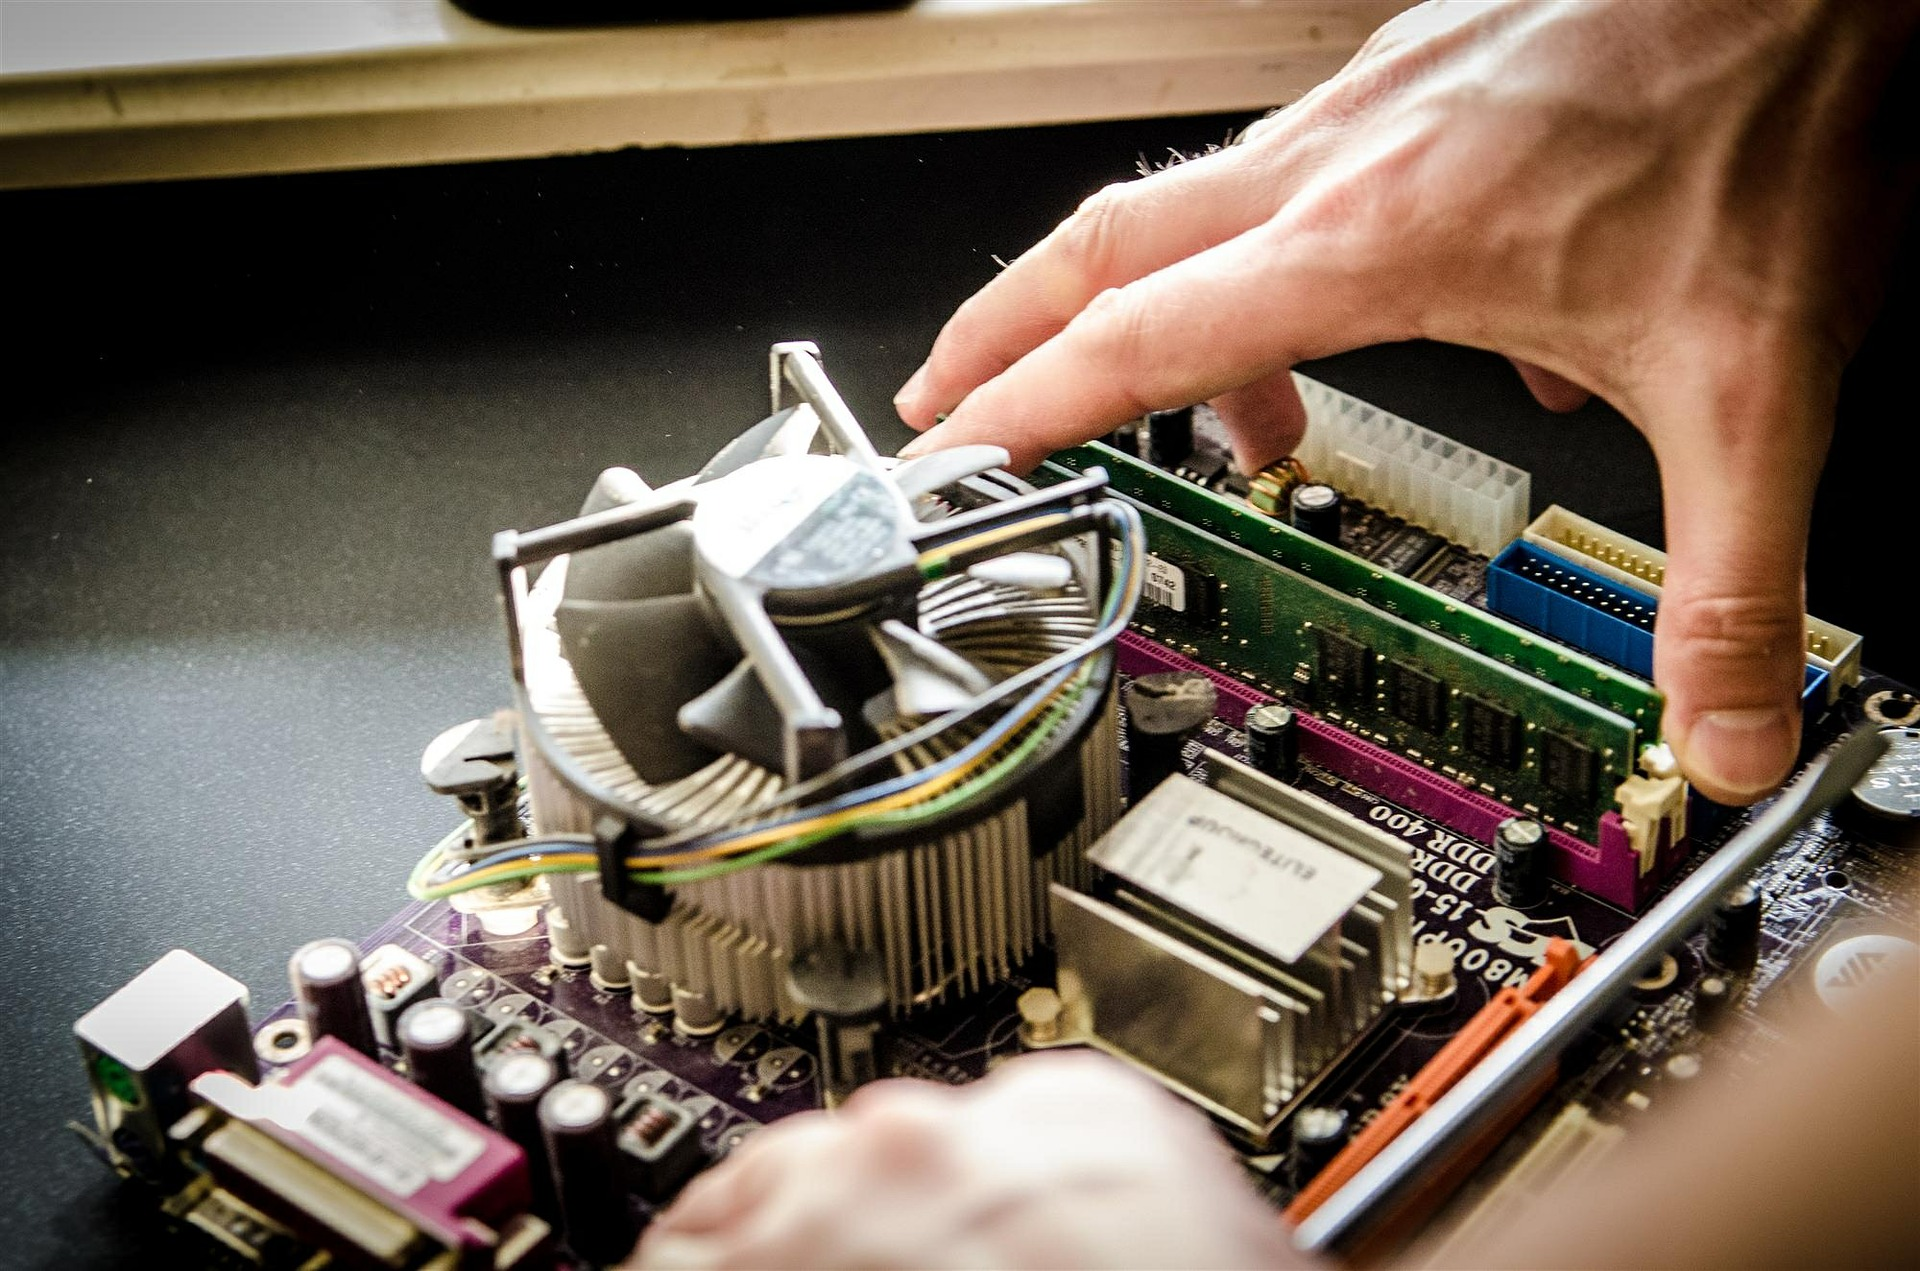 Managed IT Services Brisbane Companies Use